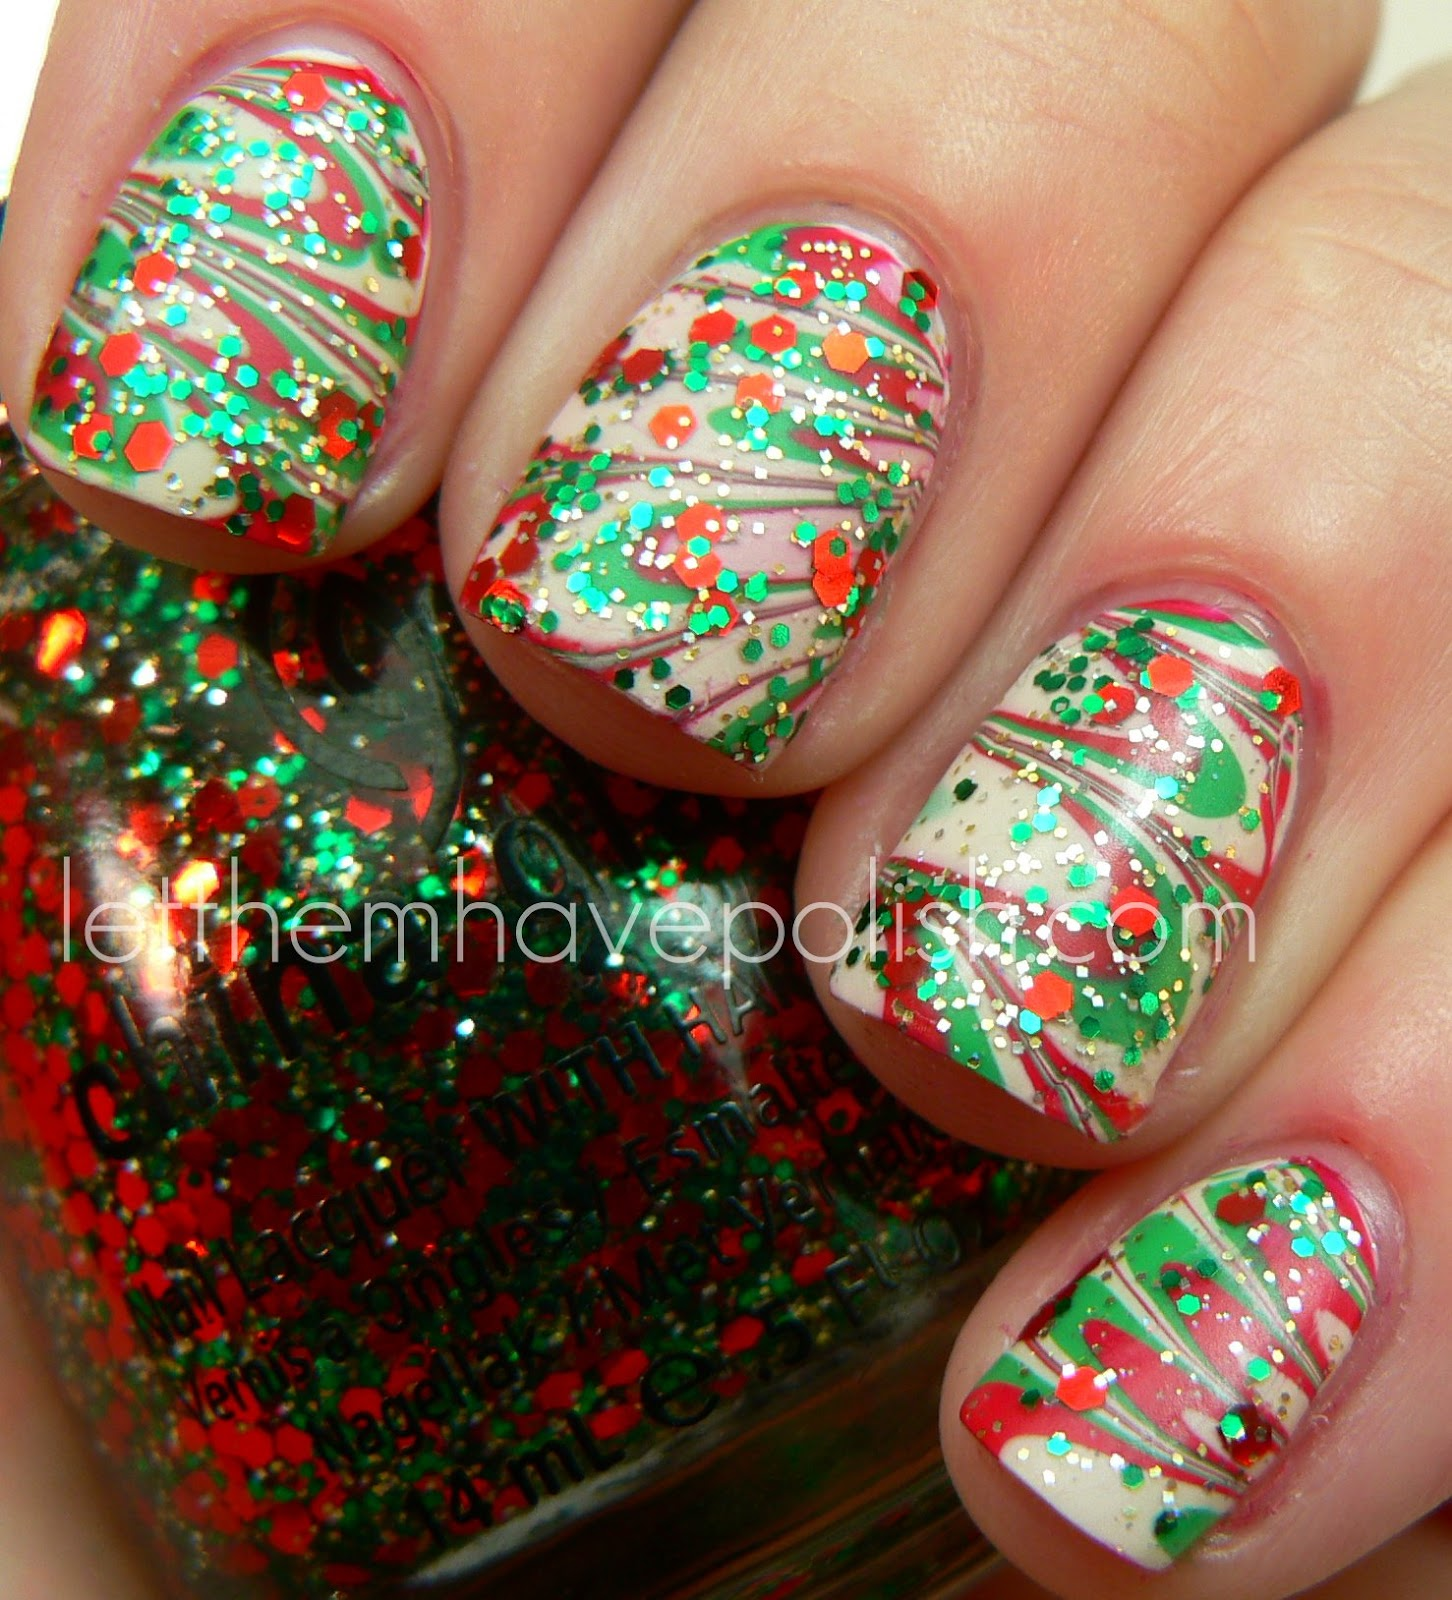 Christmas Nails With Glitter: Let Them Have Polish!: Merry Christmas!!! Holiday